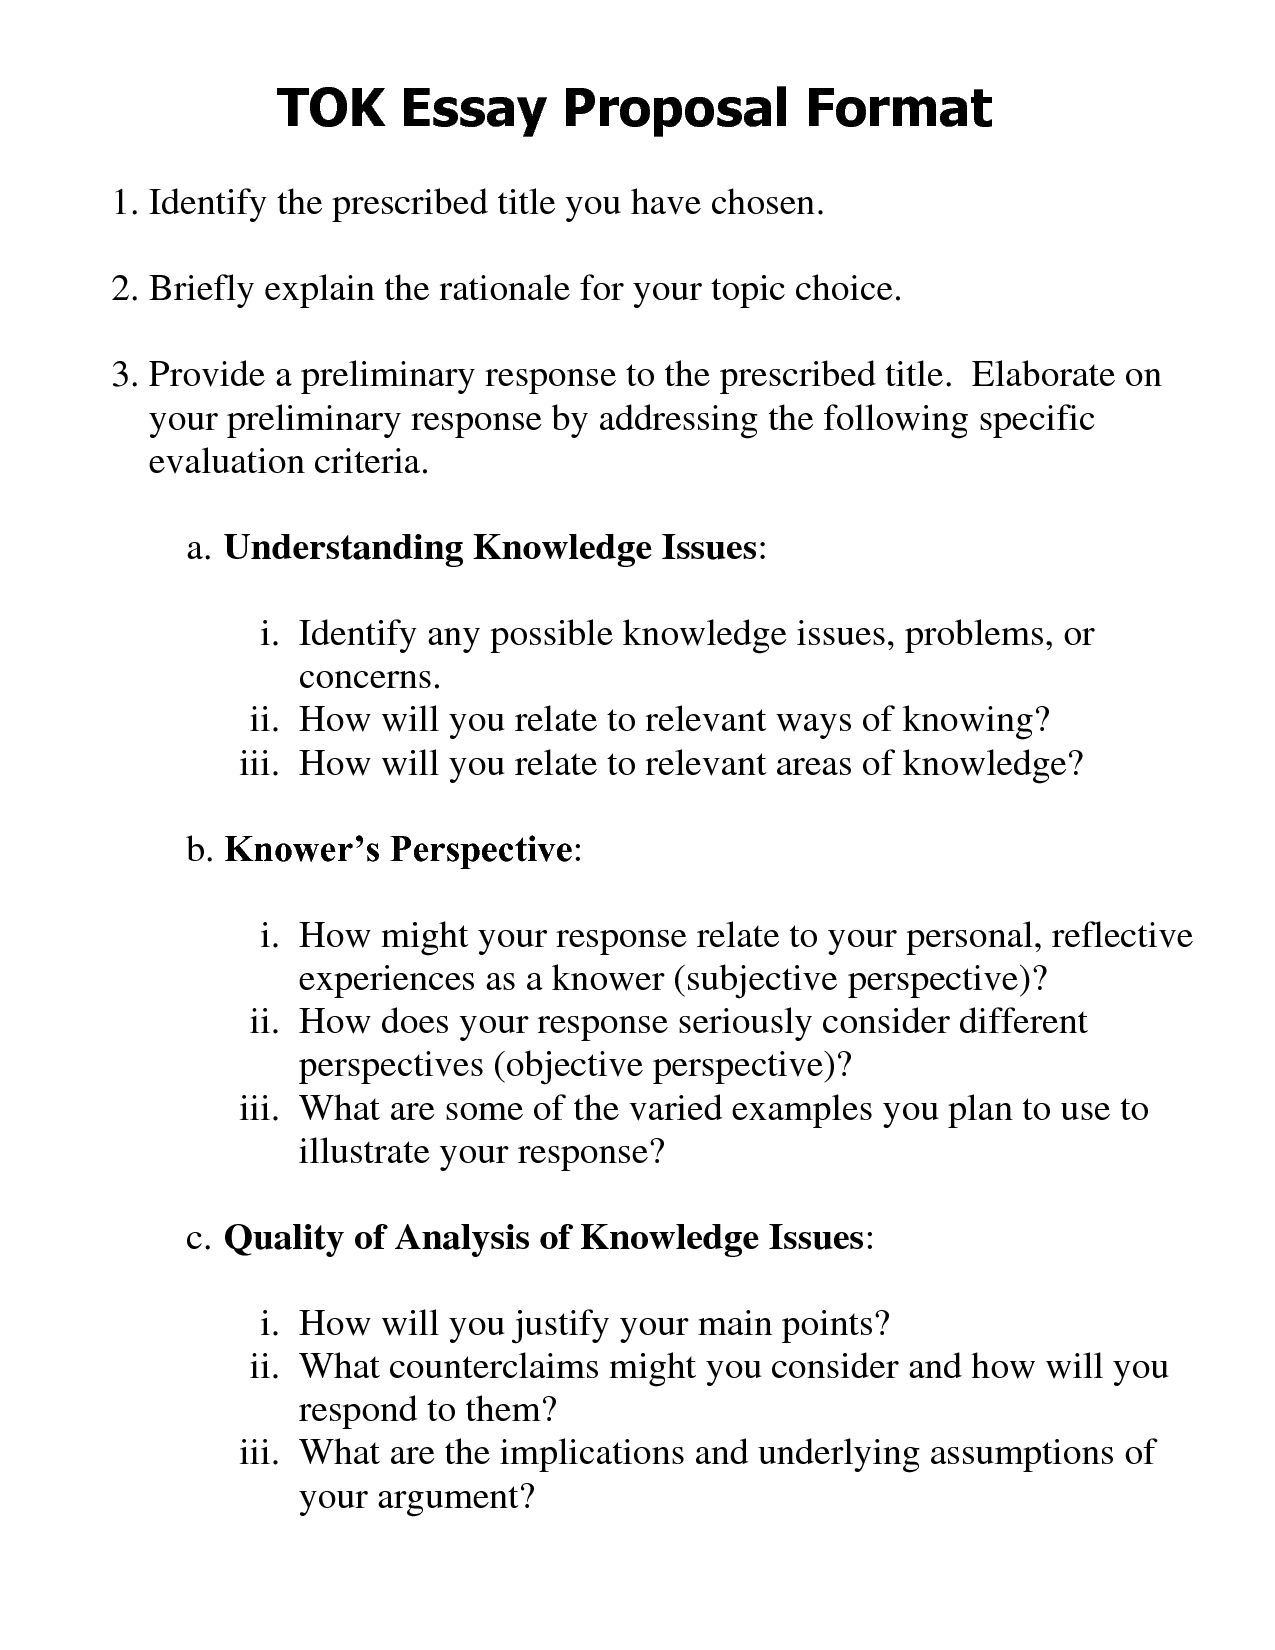 Essay Thesis Example A List Of Interesting Healthcare Topics For Your Essay Research Proposal Essay also Essay On Science Fine Writing  Writing  Whitcoulls Proposal Essay Topic List  Essay Samples For High School Students